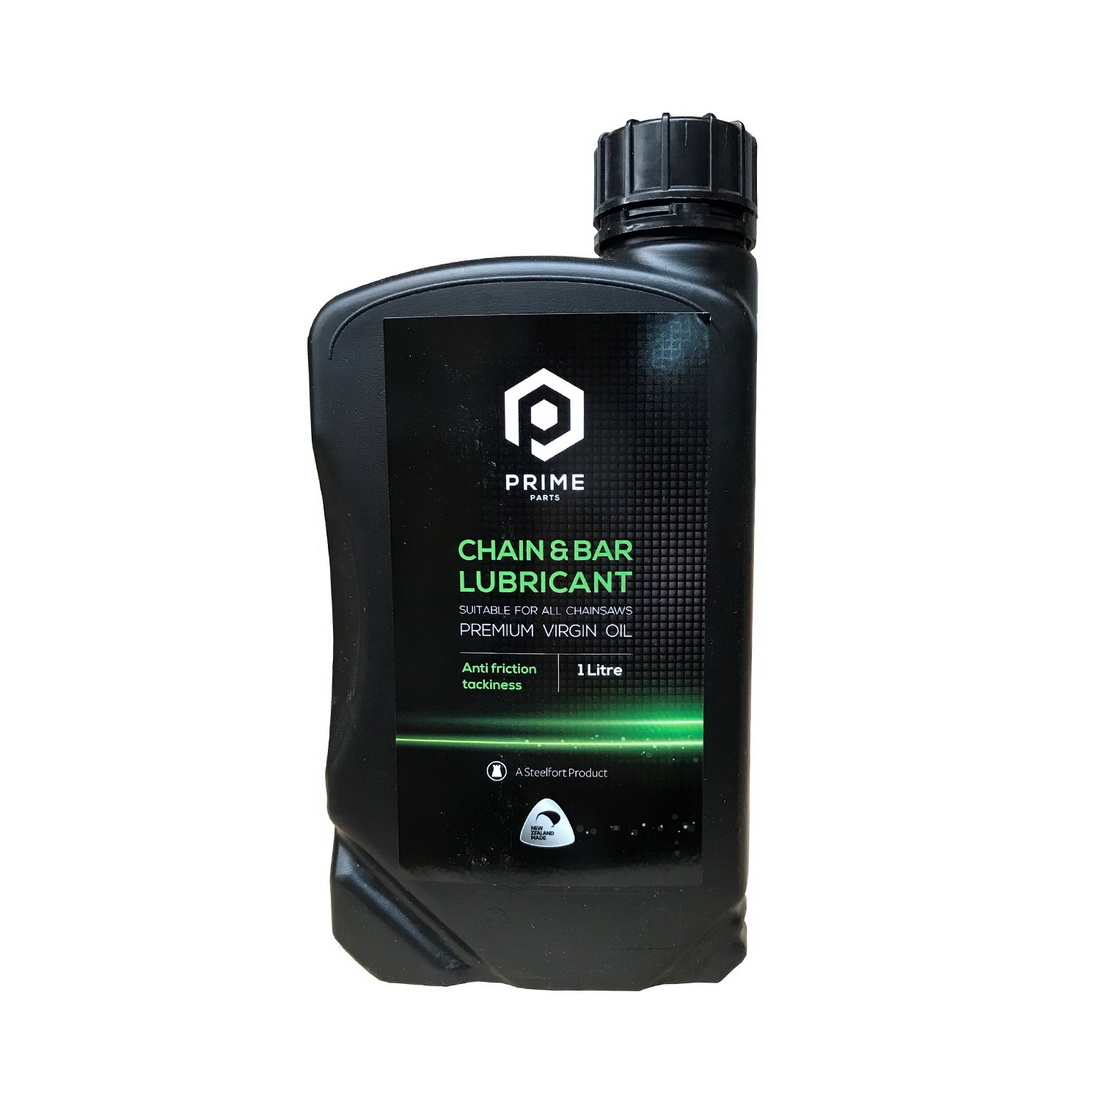 1L Premium Virgin Chain & Bar Lubricant